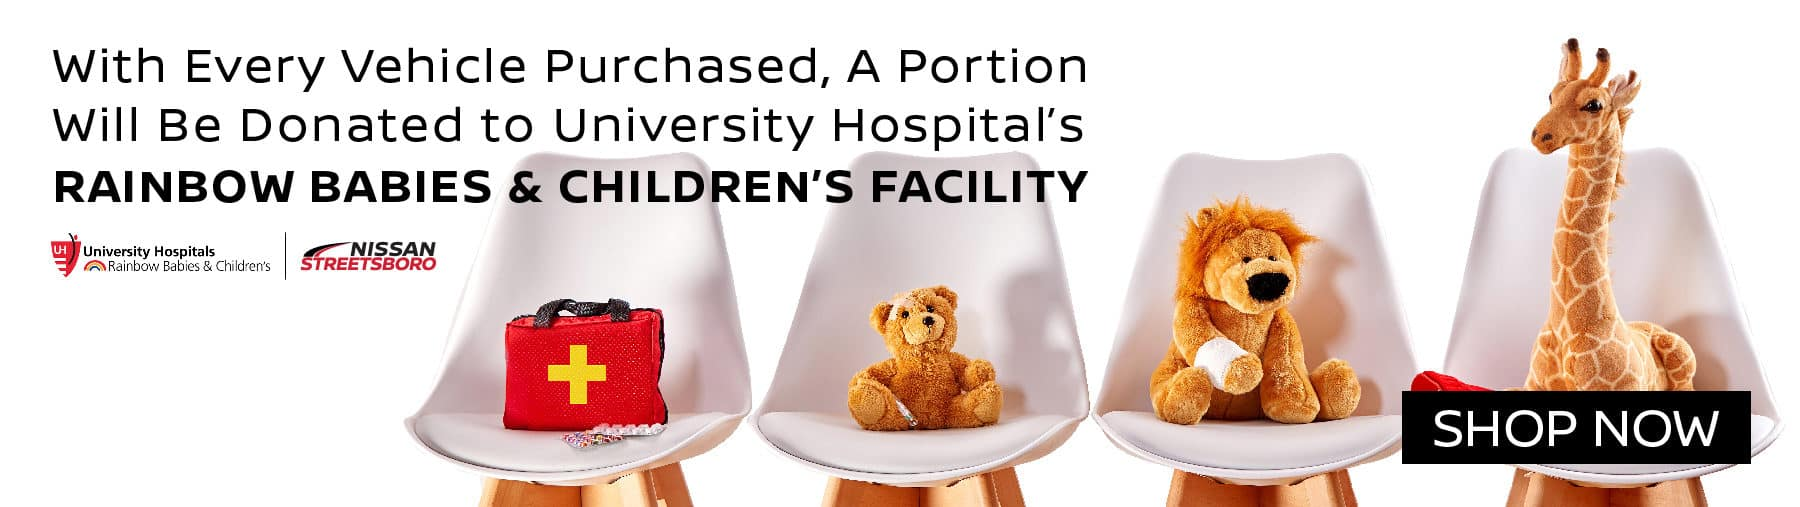 University Hospital Rainbow Babies & Children